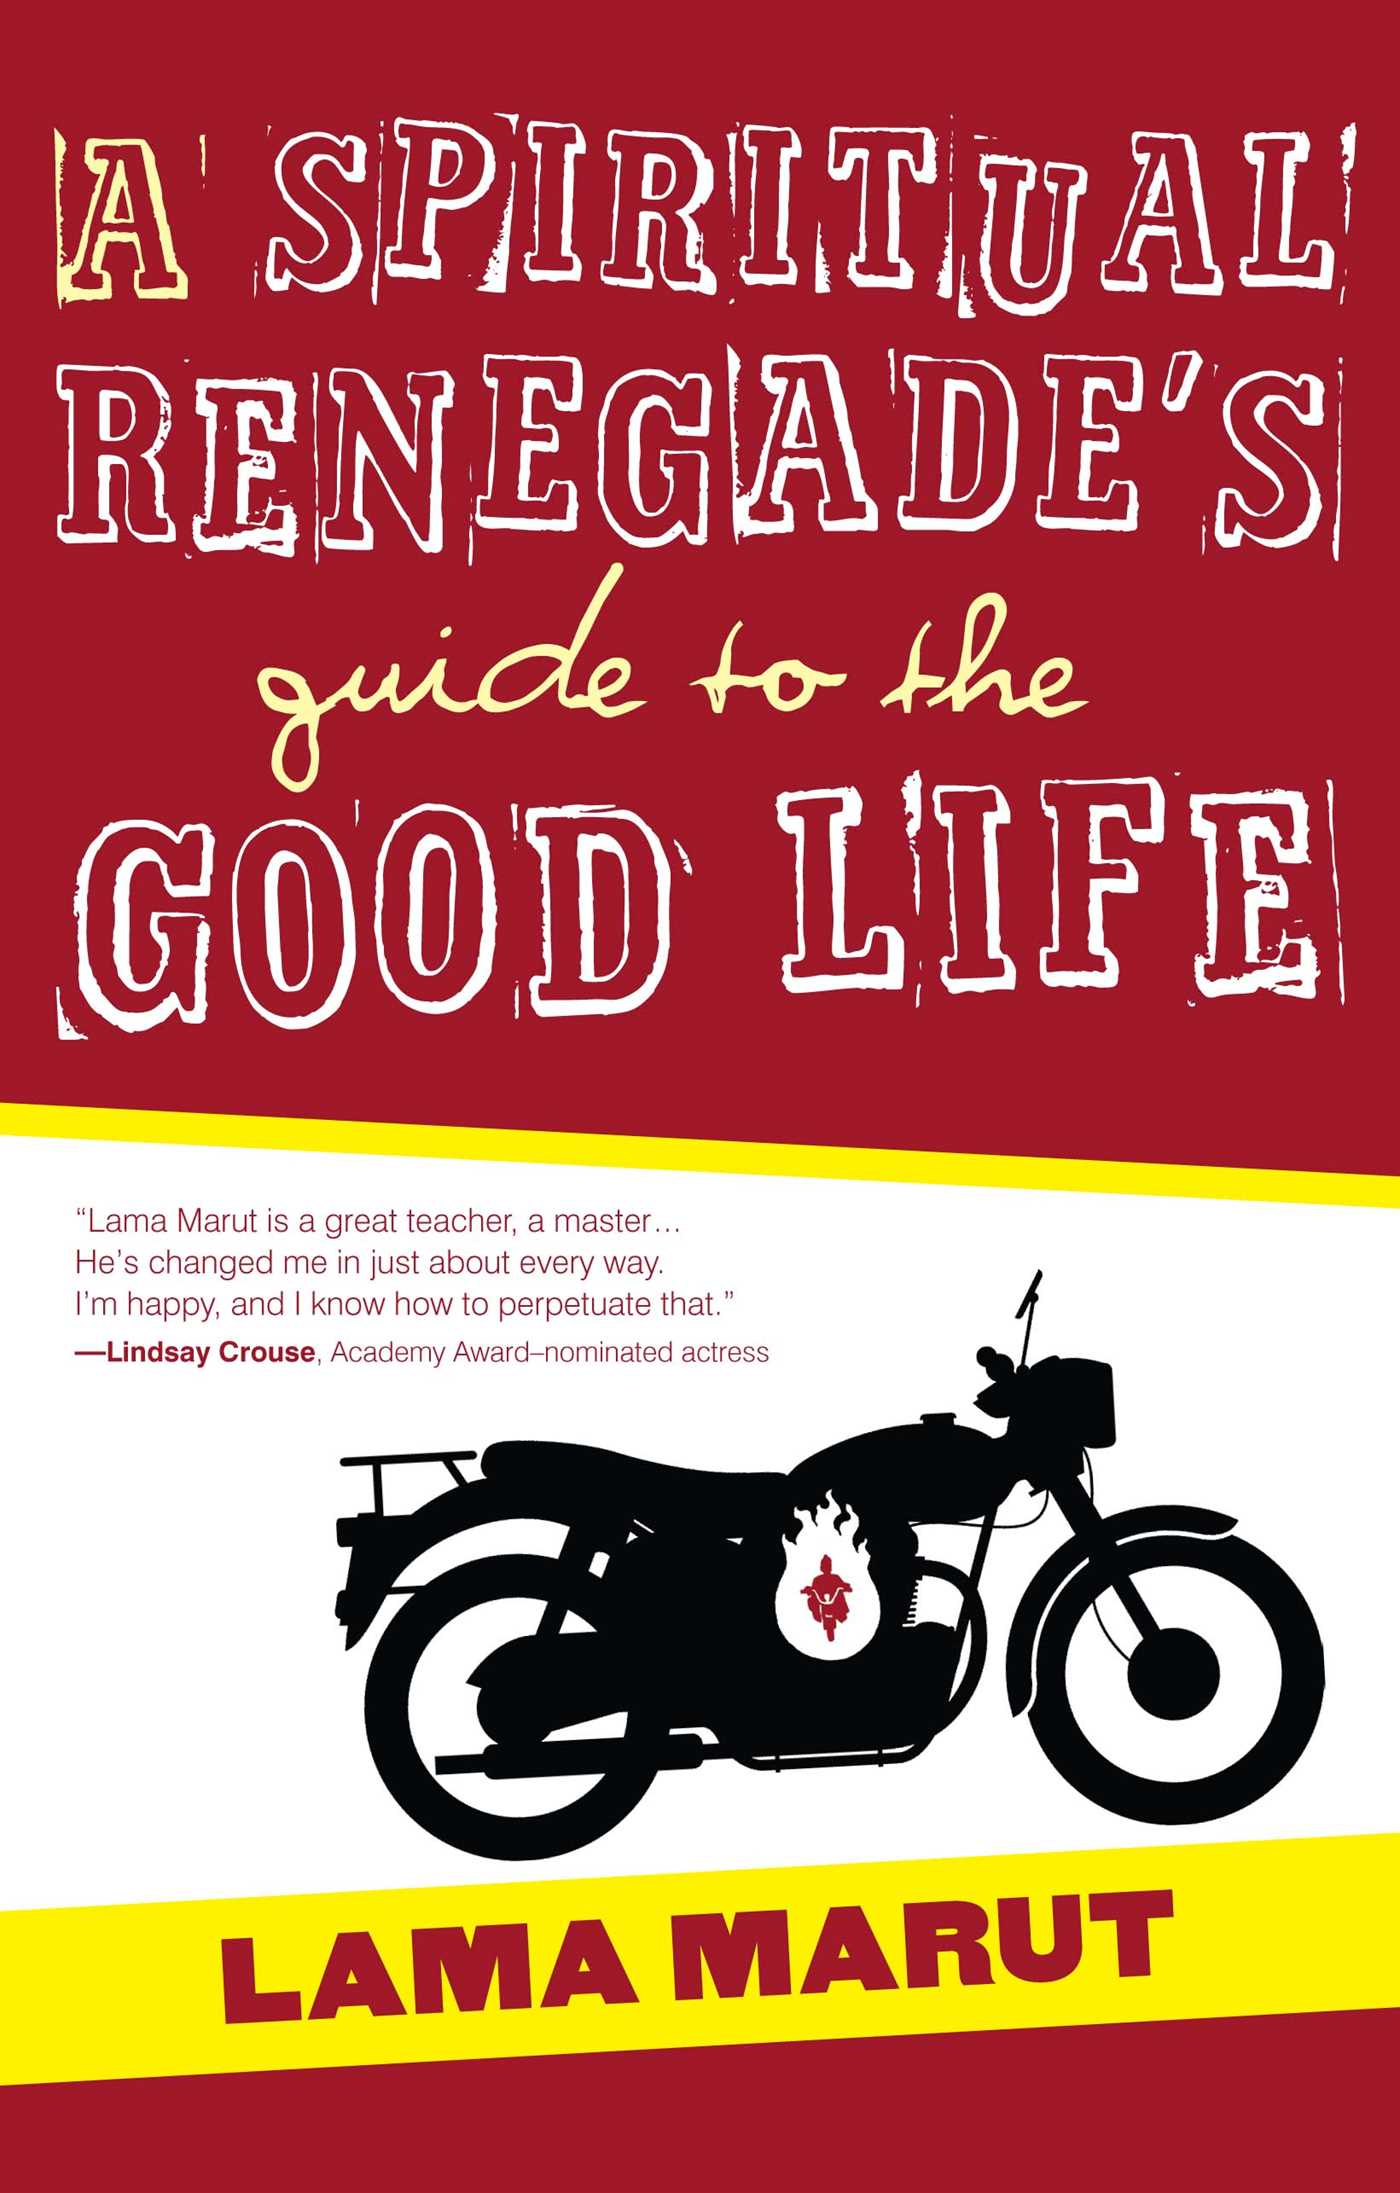 A-spiritual-renegades-guide-to-the-good-life-9781582703732_hr